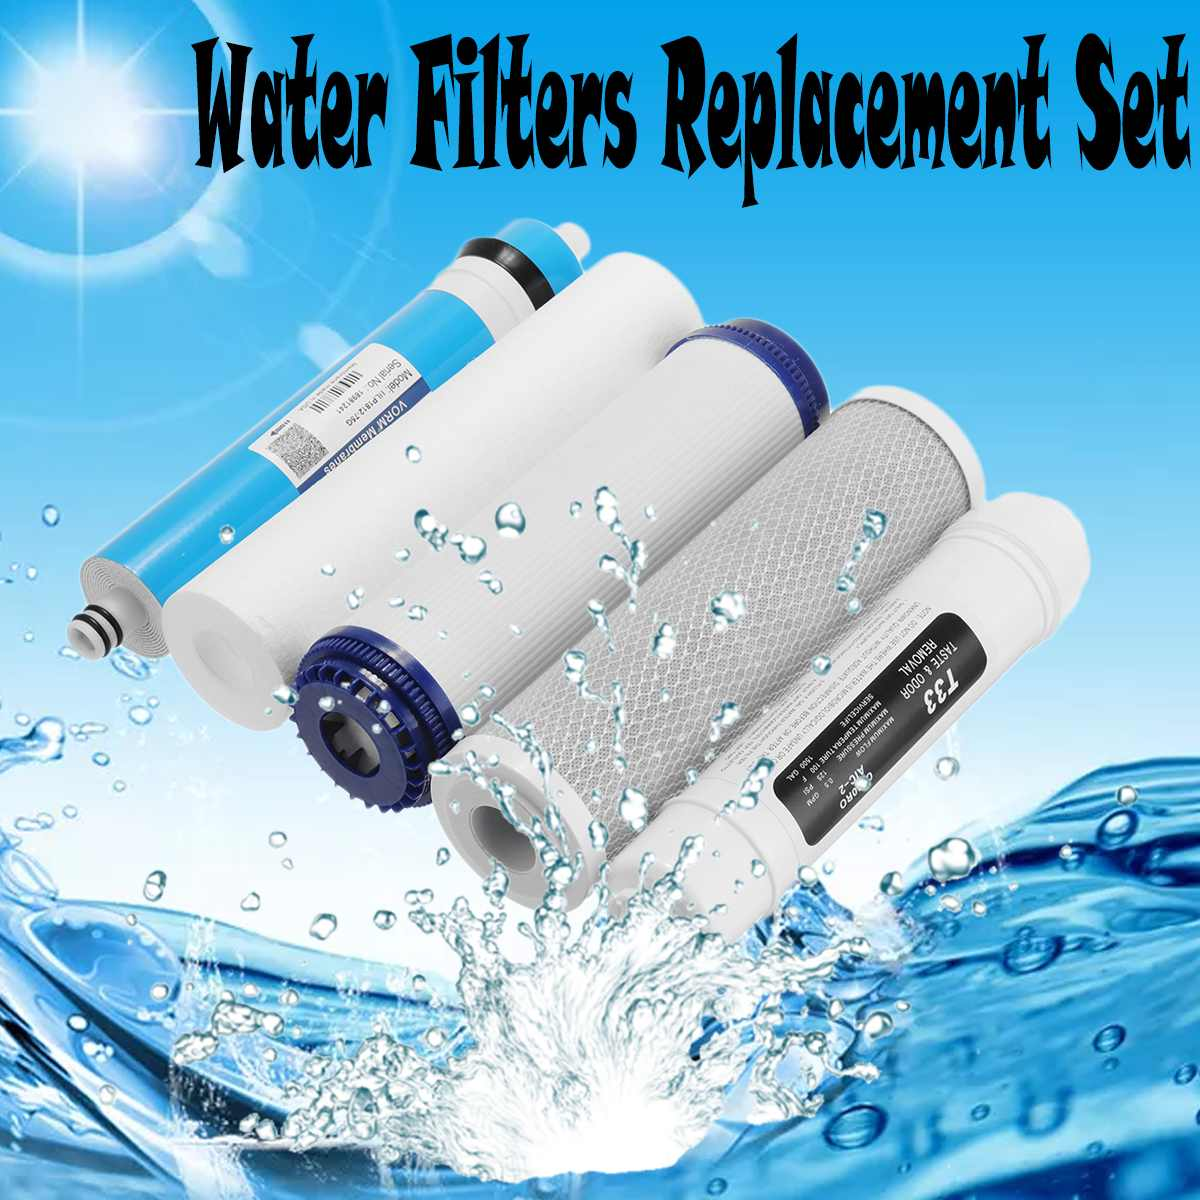 5  Reverse Osmosis RO Water Filters Replacement Set With Water Filter Cartridge 75 GPD Membrane Household Water Purifier